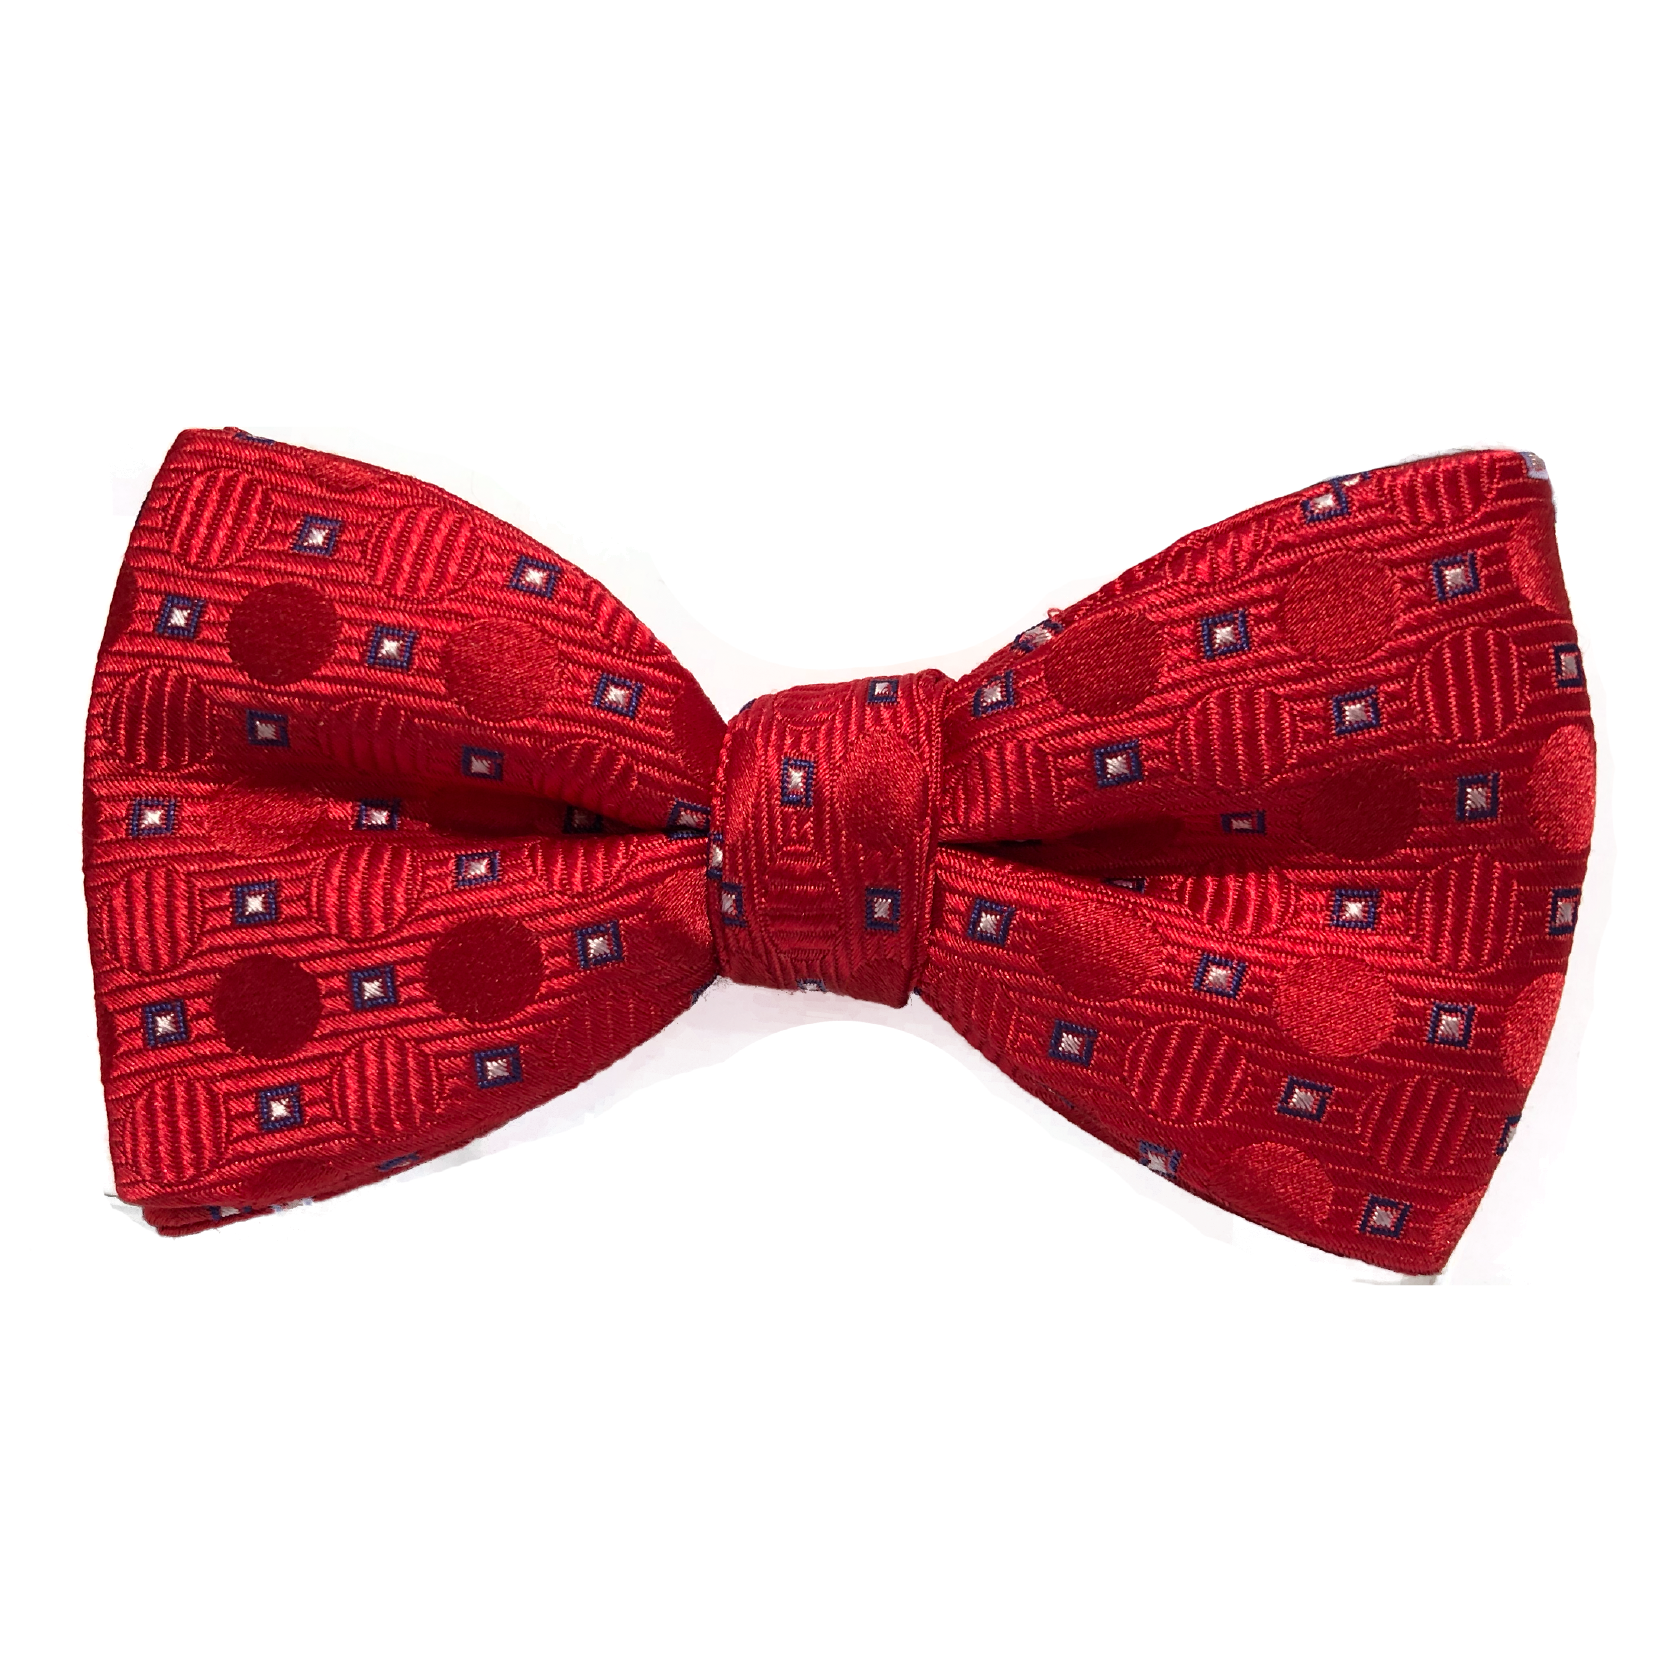 Silk Bow Tie Red and Blue Pattern